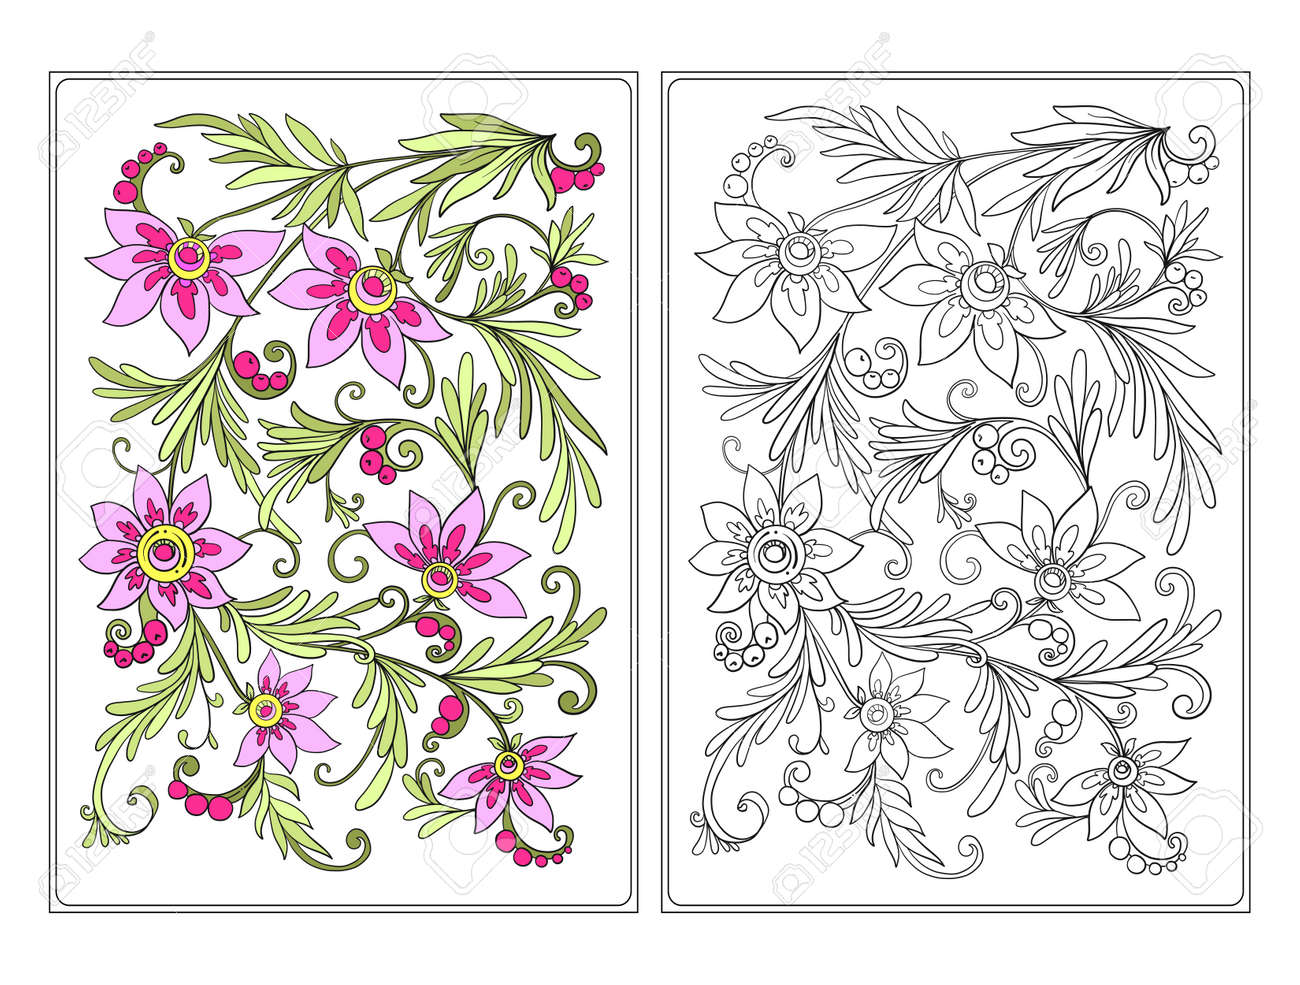 Floral Pattern Flower Background With Flowers Anti Stress Coloring Book For